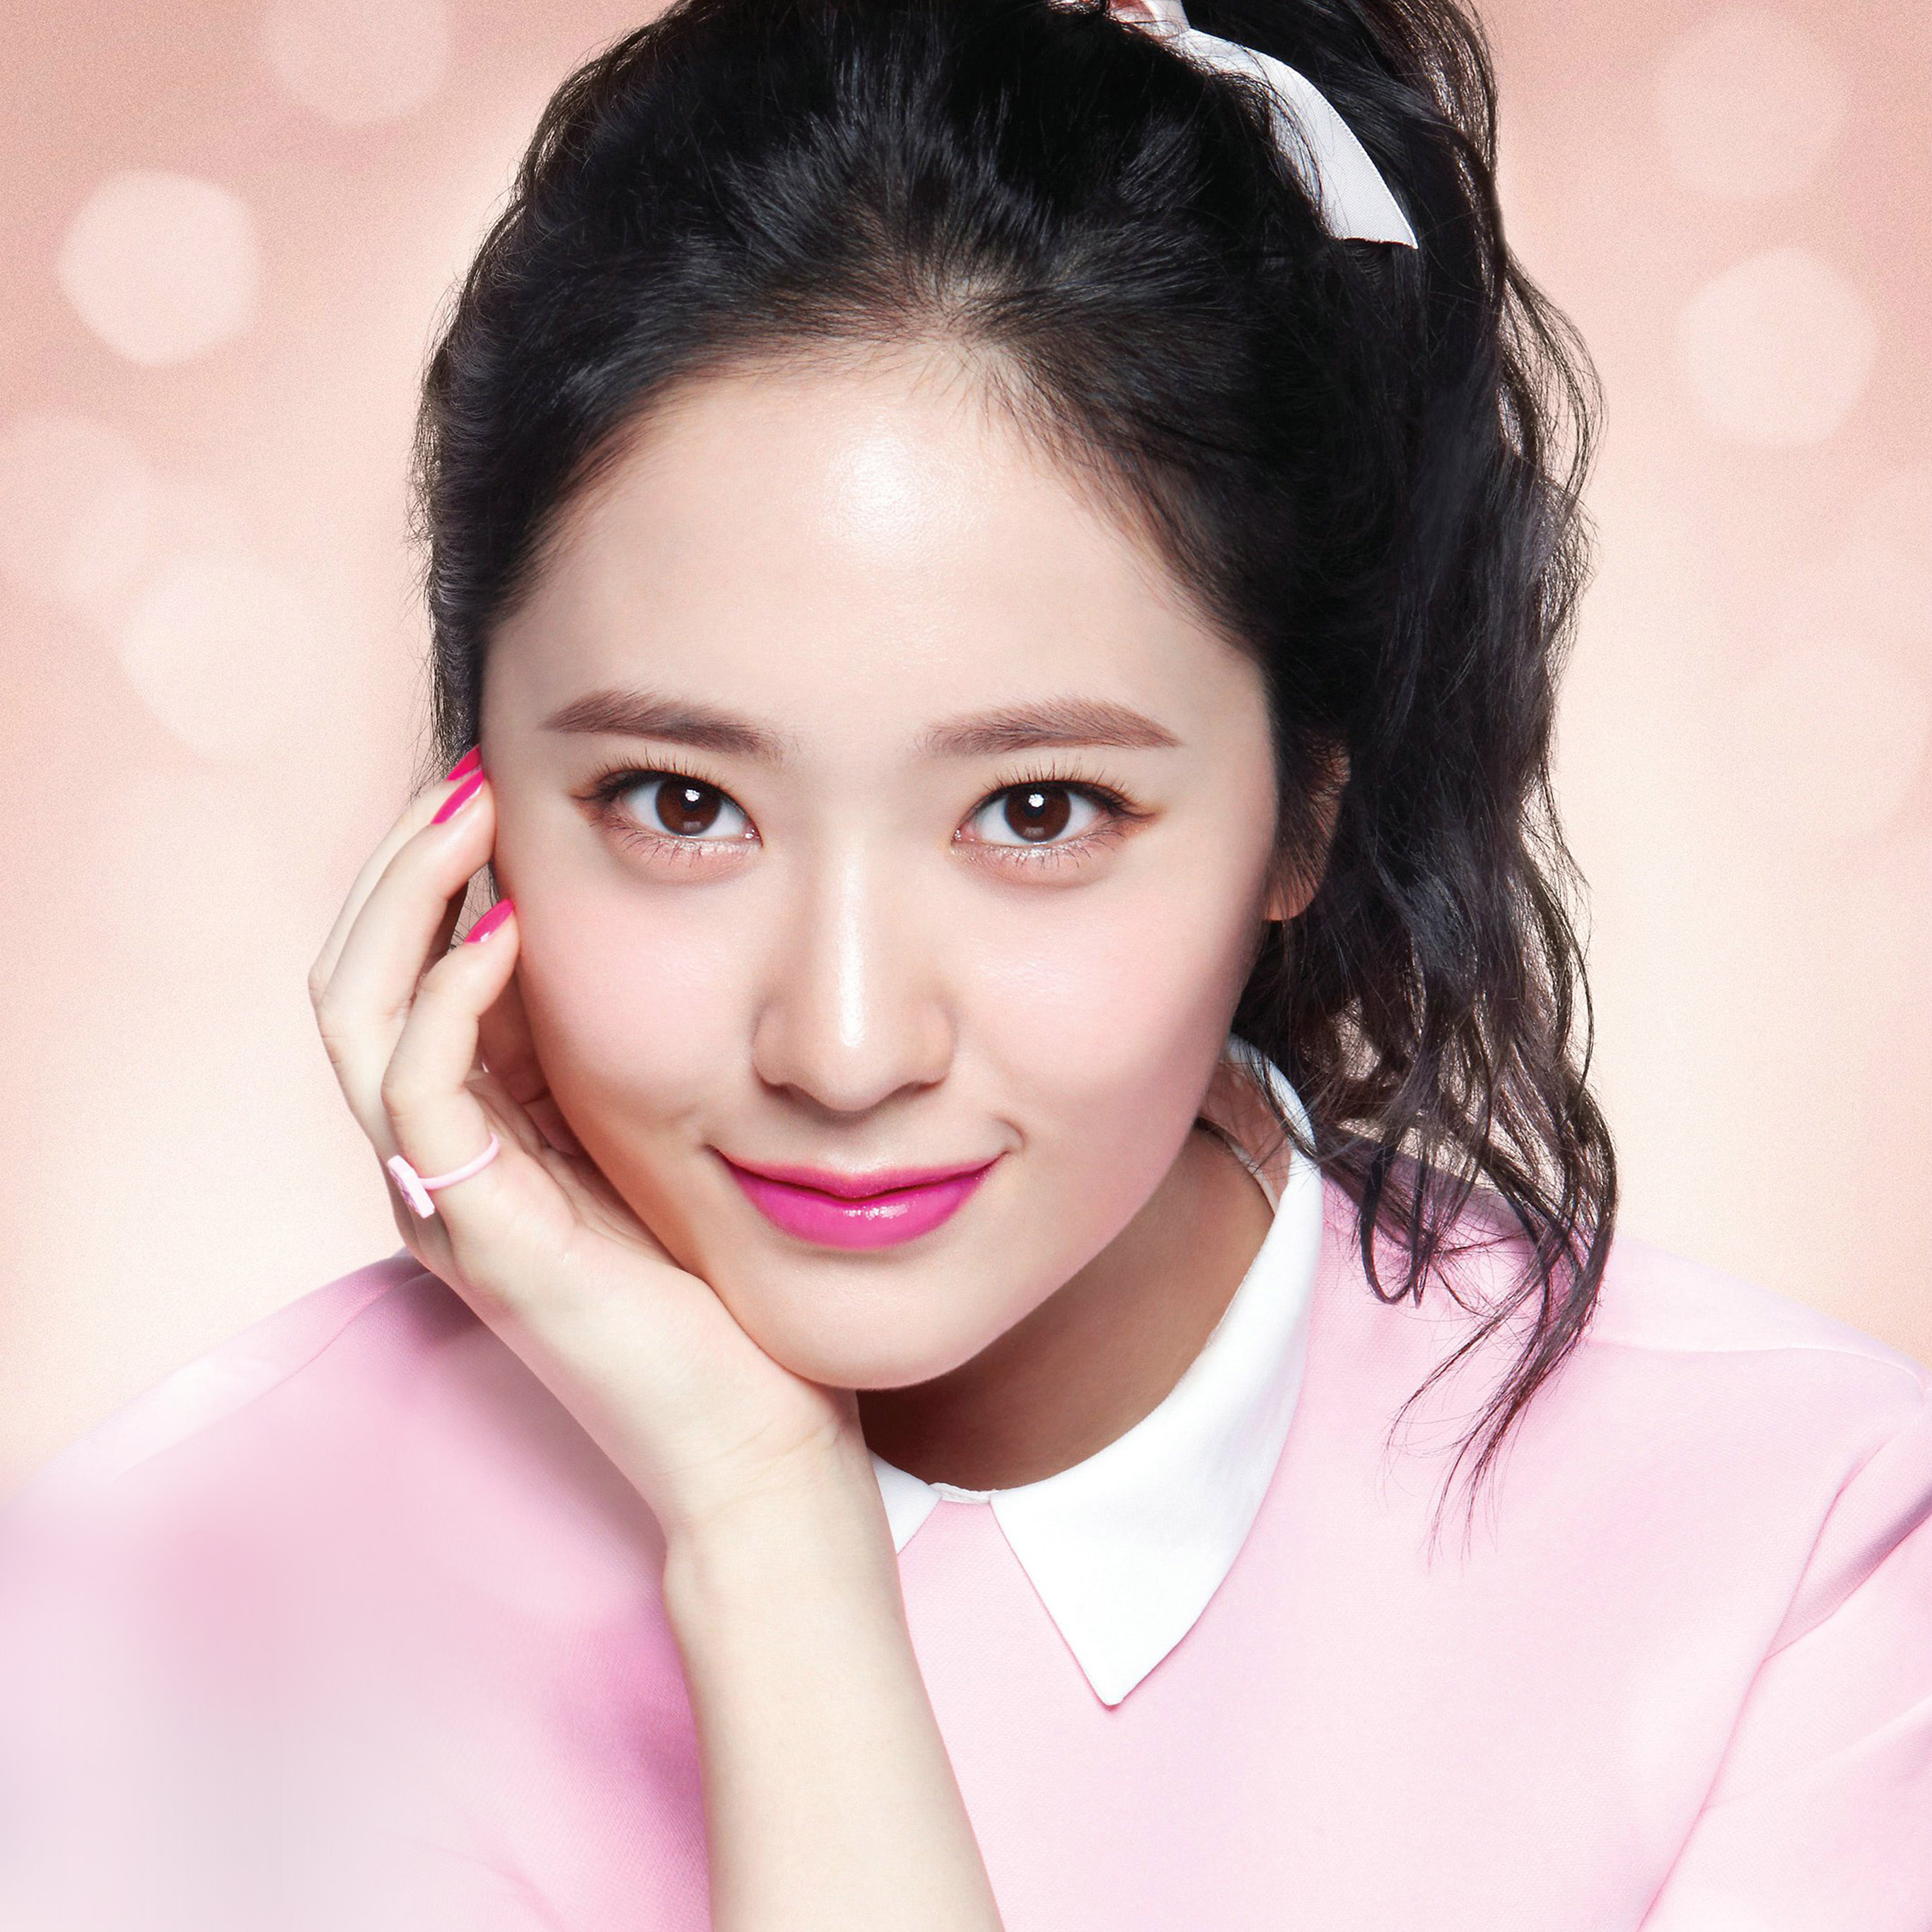 Fx Victoria Cute Asian Girl Music Android wallpaper